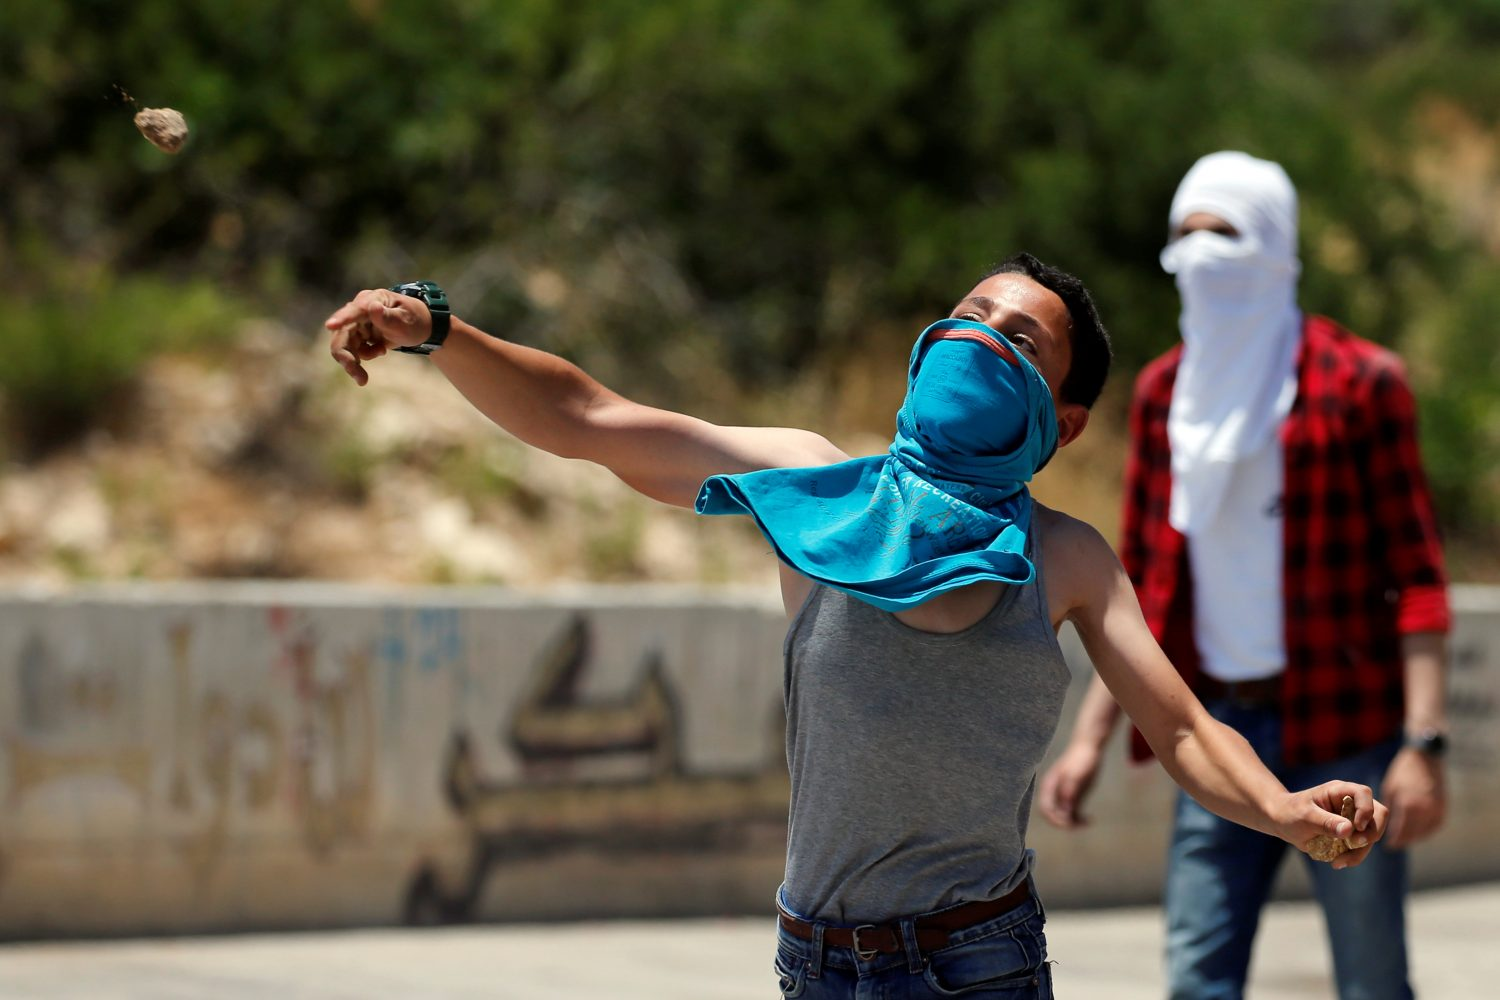 A Palestinian boy hurls stones at Israeli forces during clashes at a protest against Bahrain's workshop for U.S. peace plan, near Hebron, in the Israeli-occupied West Bank June 24, 2019. REUTERS/Mussa Qawasma